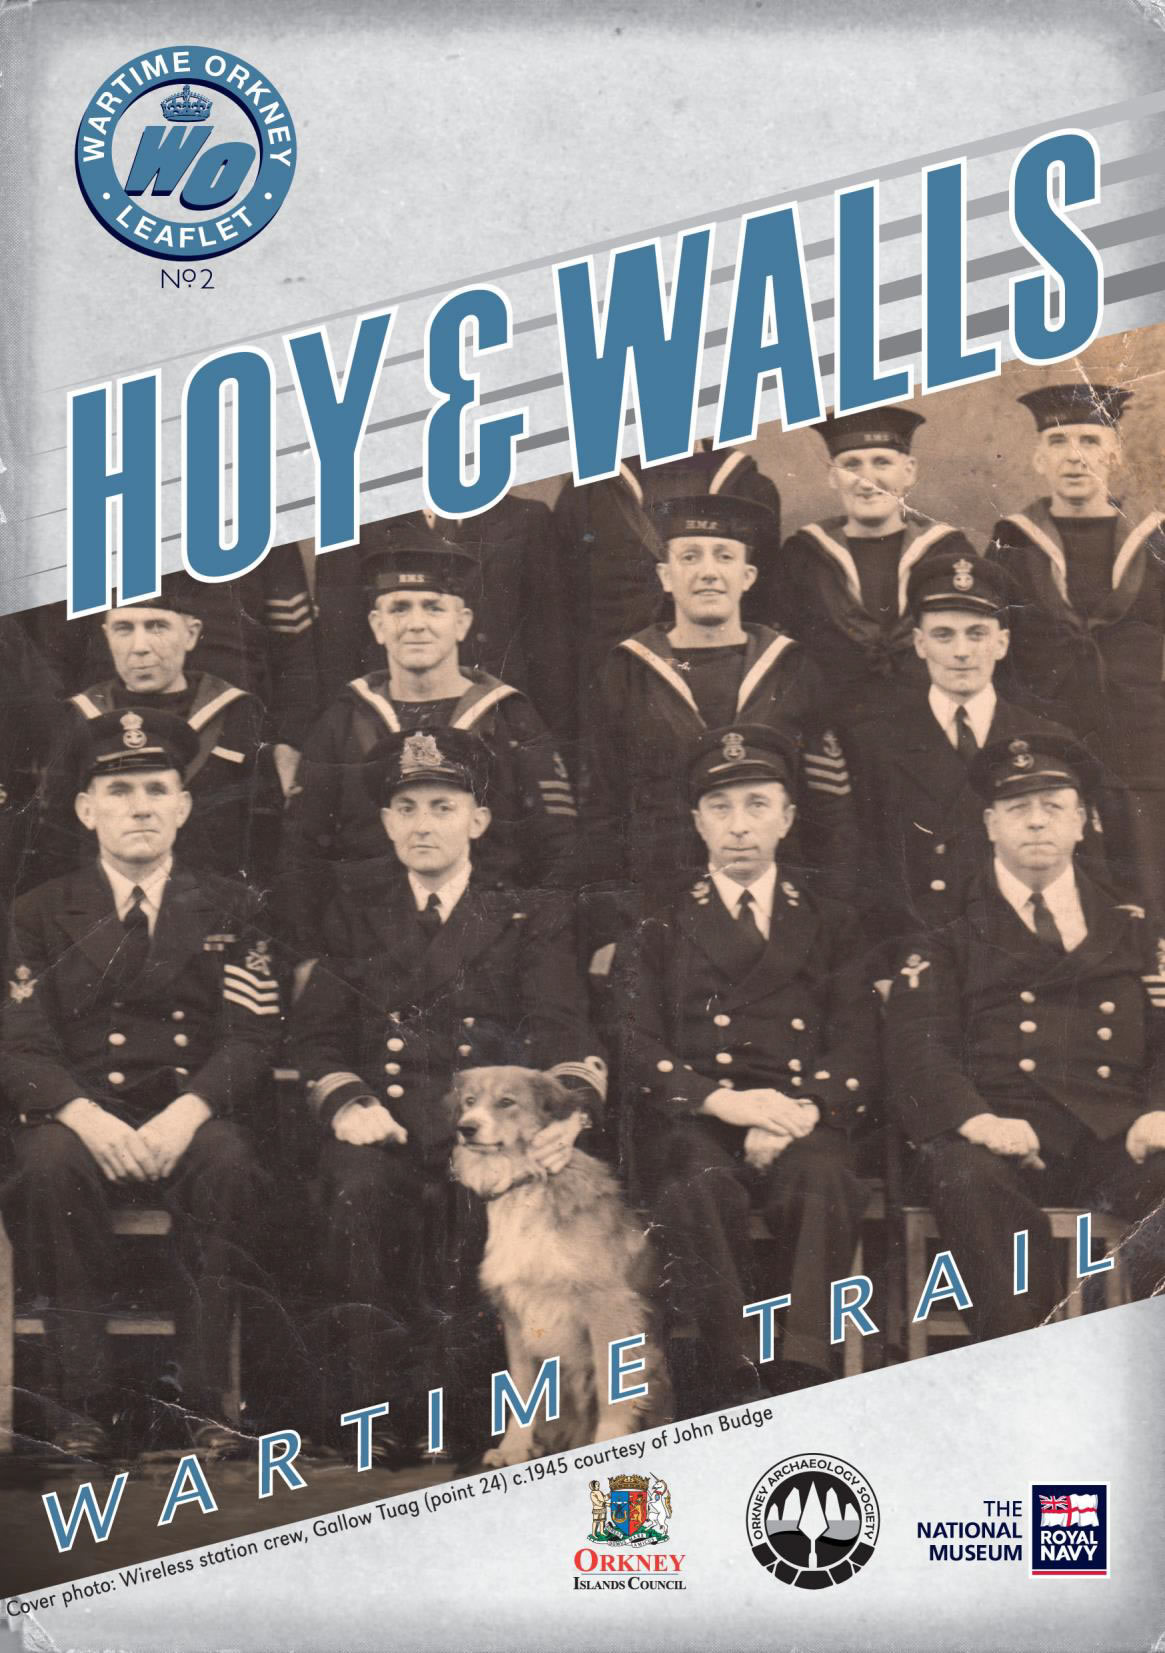 Hoy & Walls Wartime Heritage Trail (OWL2)